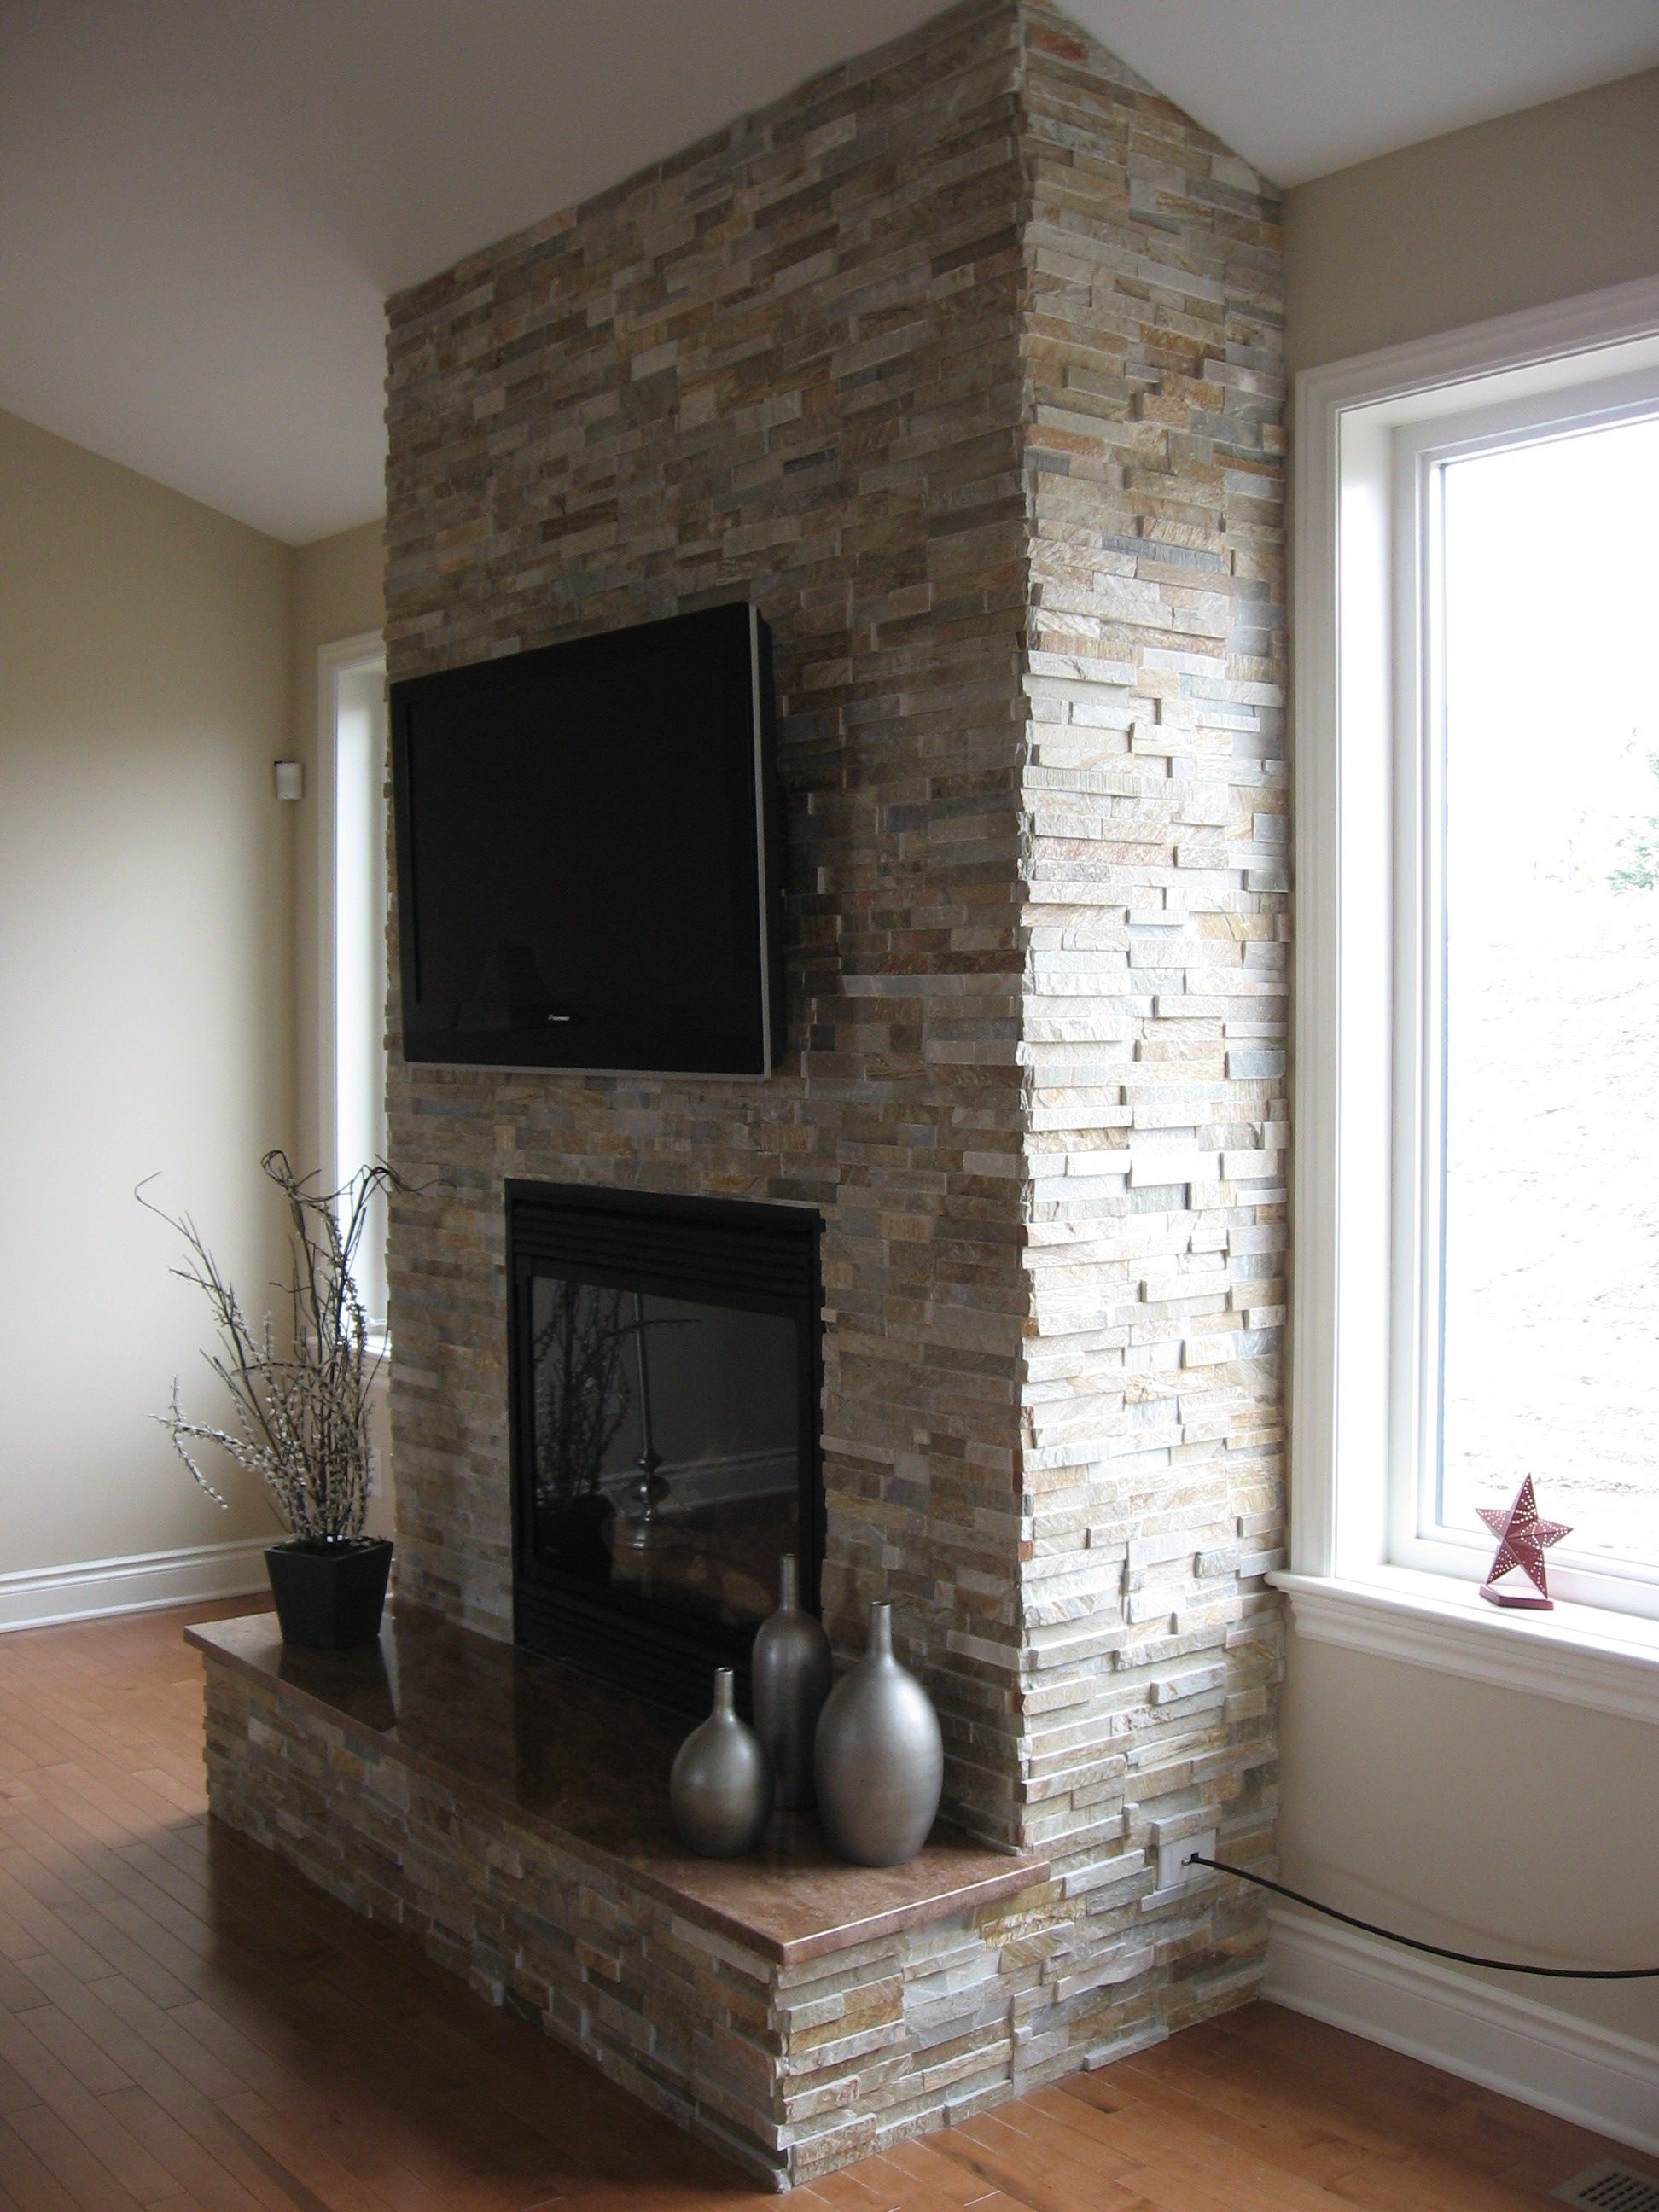 Fireplace Done With Realstone Systems Sierra Shadowstone With